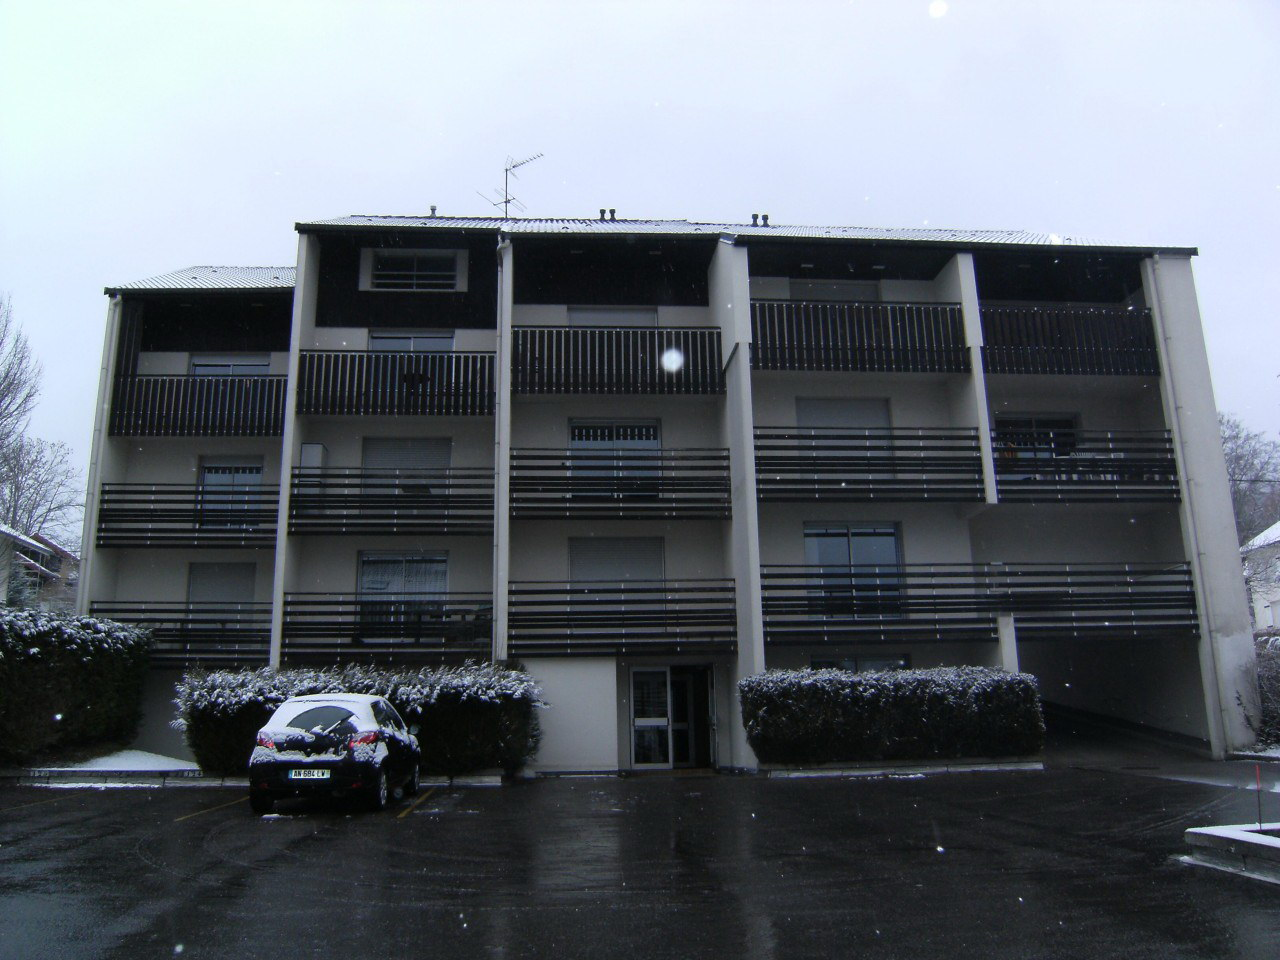 Agence immobili re g rardmer annonce appartements n 2037 for Agence immobiliere gerardmer